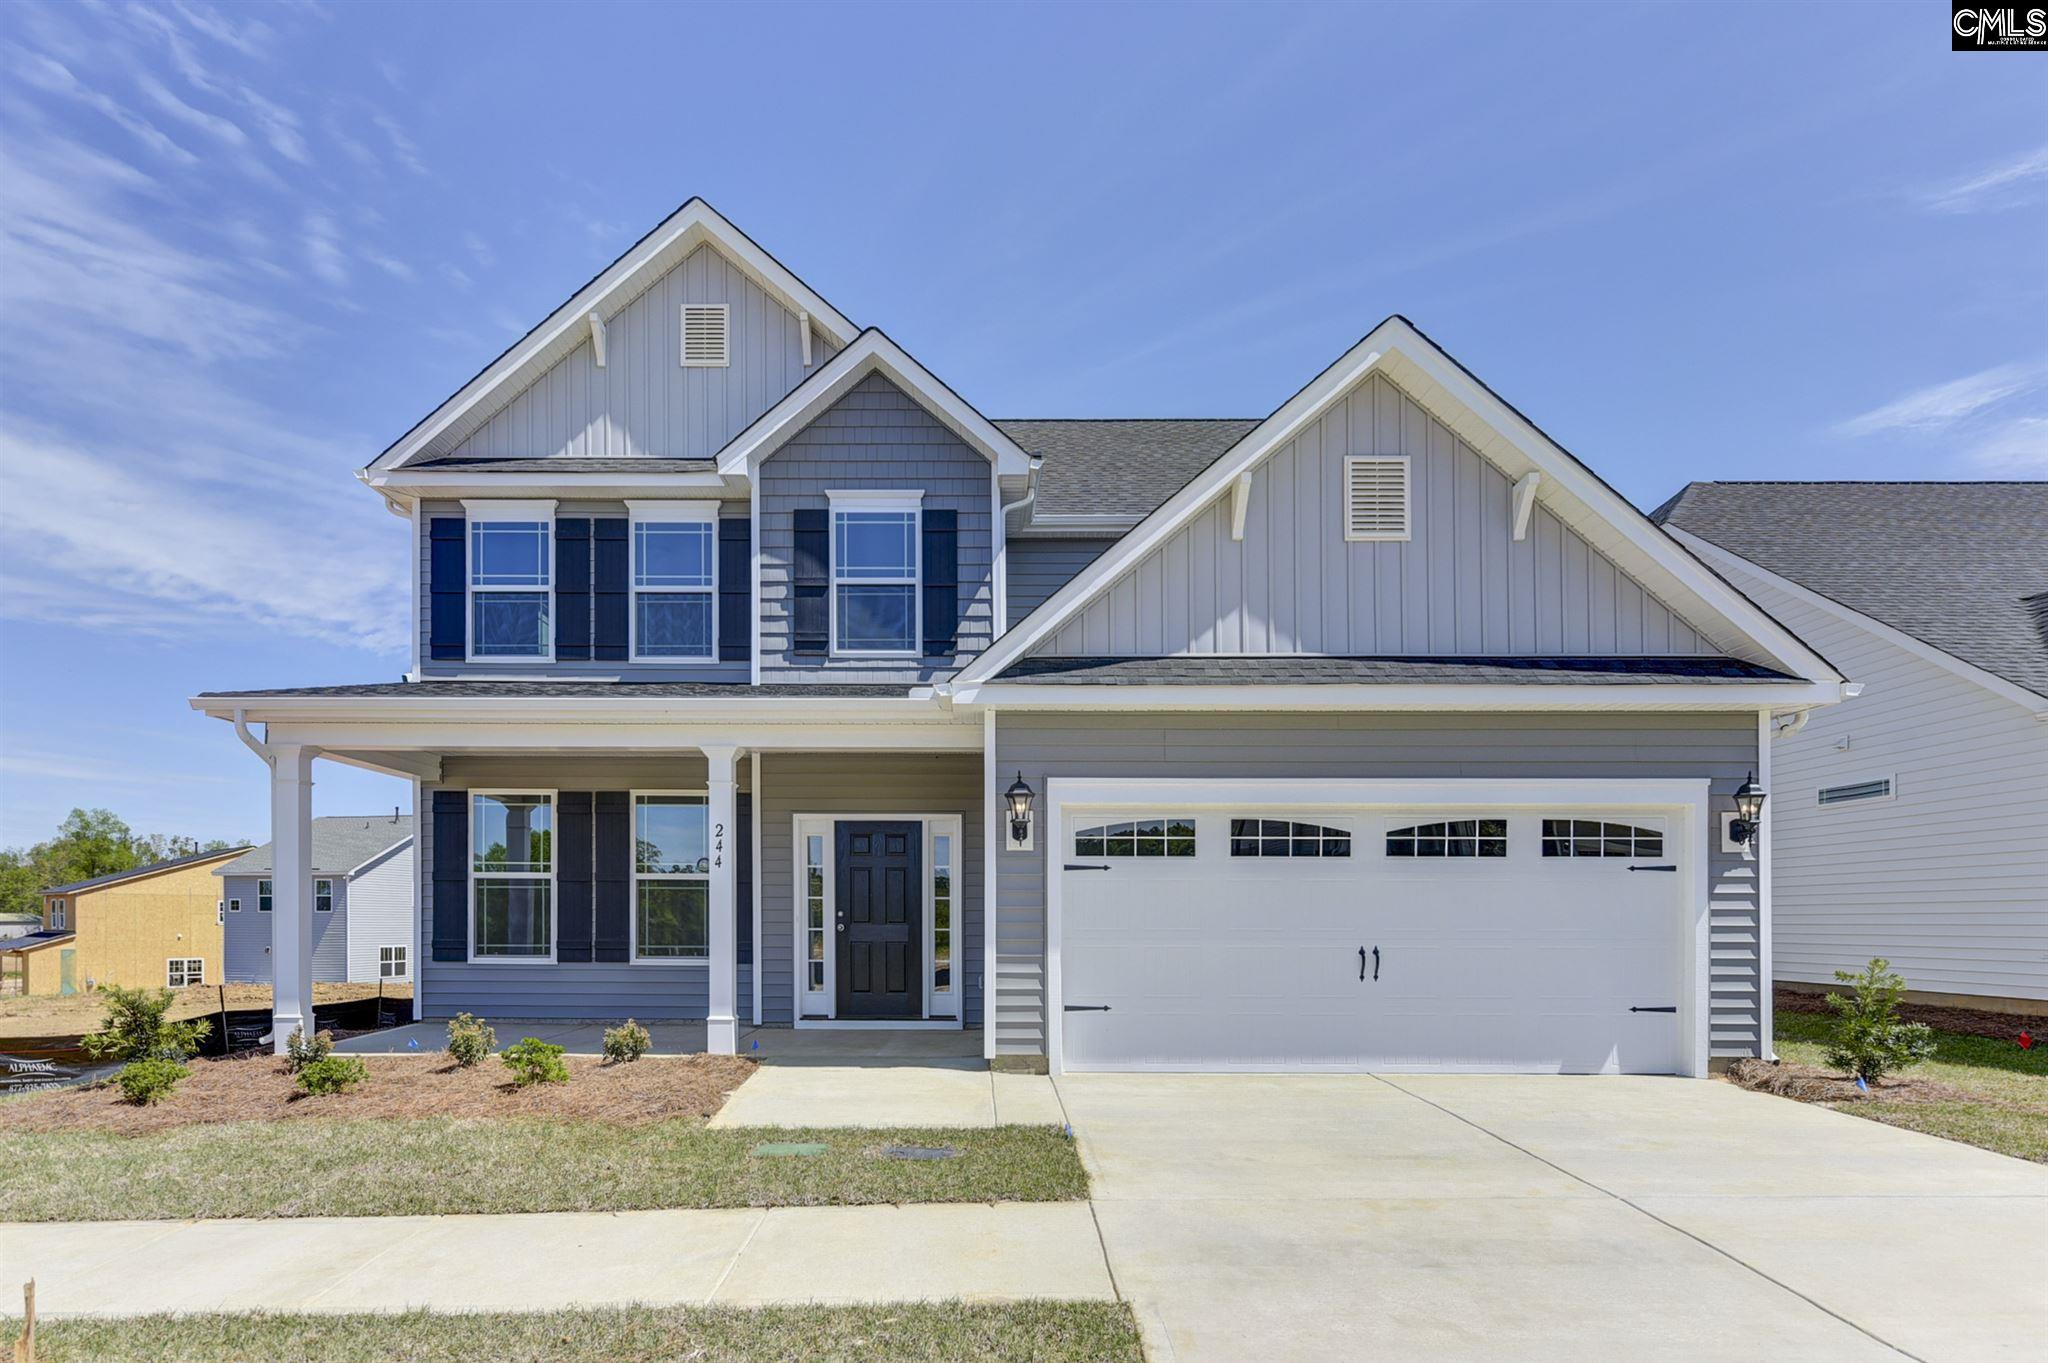 244 Wessinger Farms Chapin, SC 29036